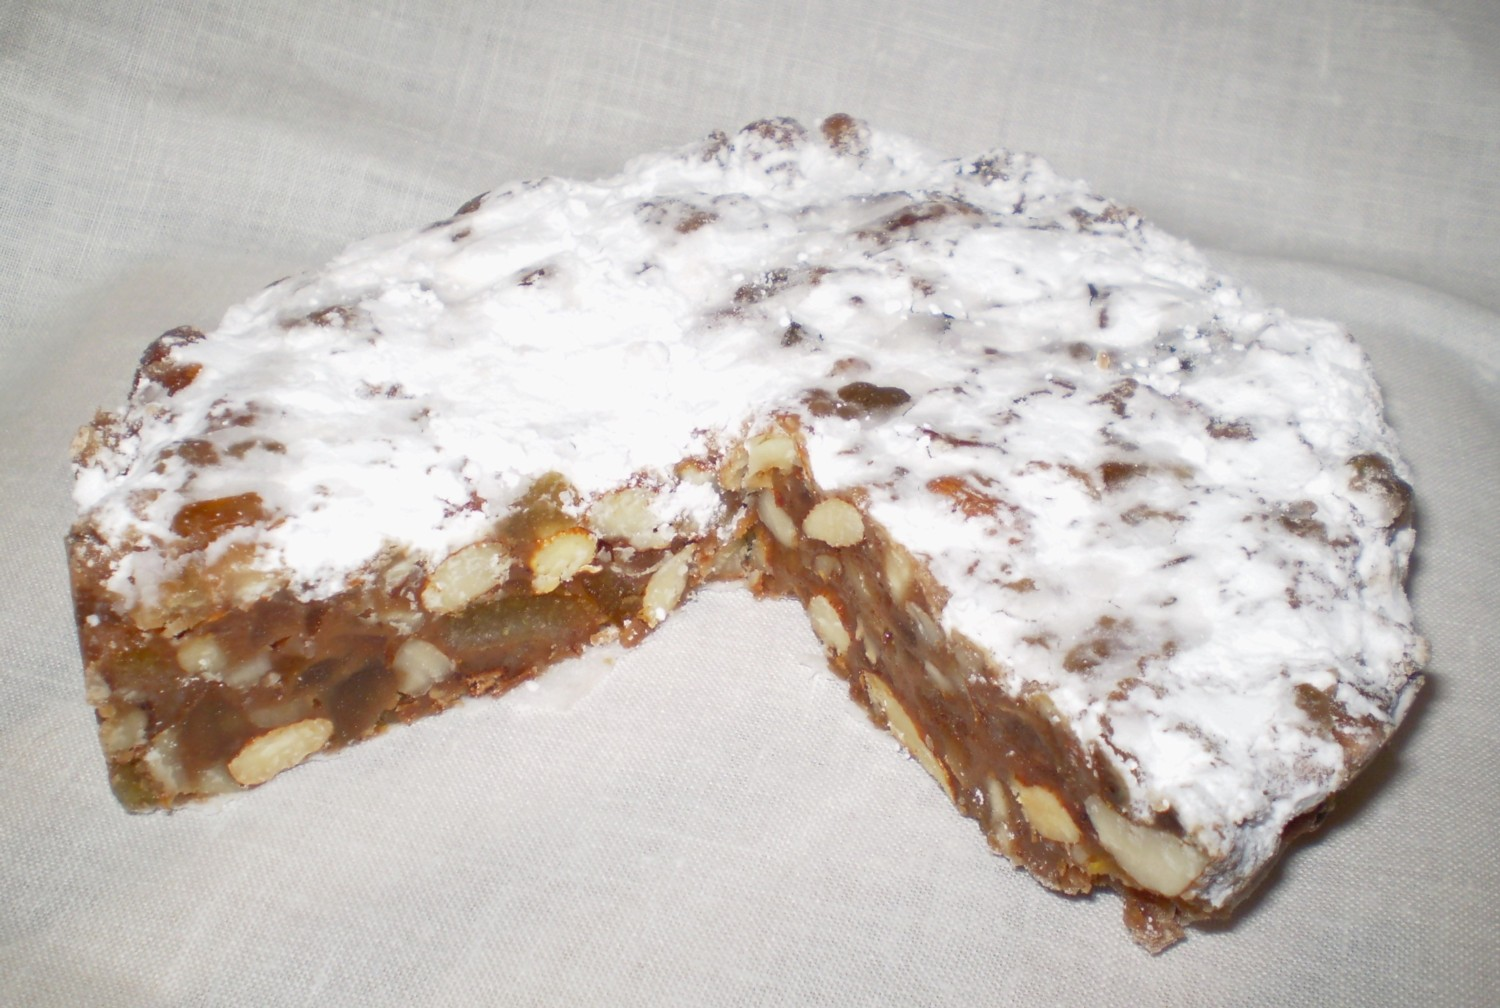 File:Panforte.jpg - Wikipedia